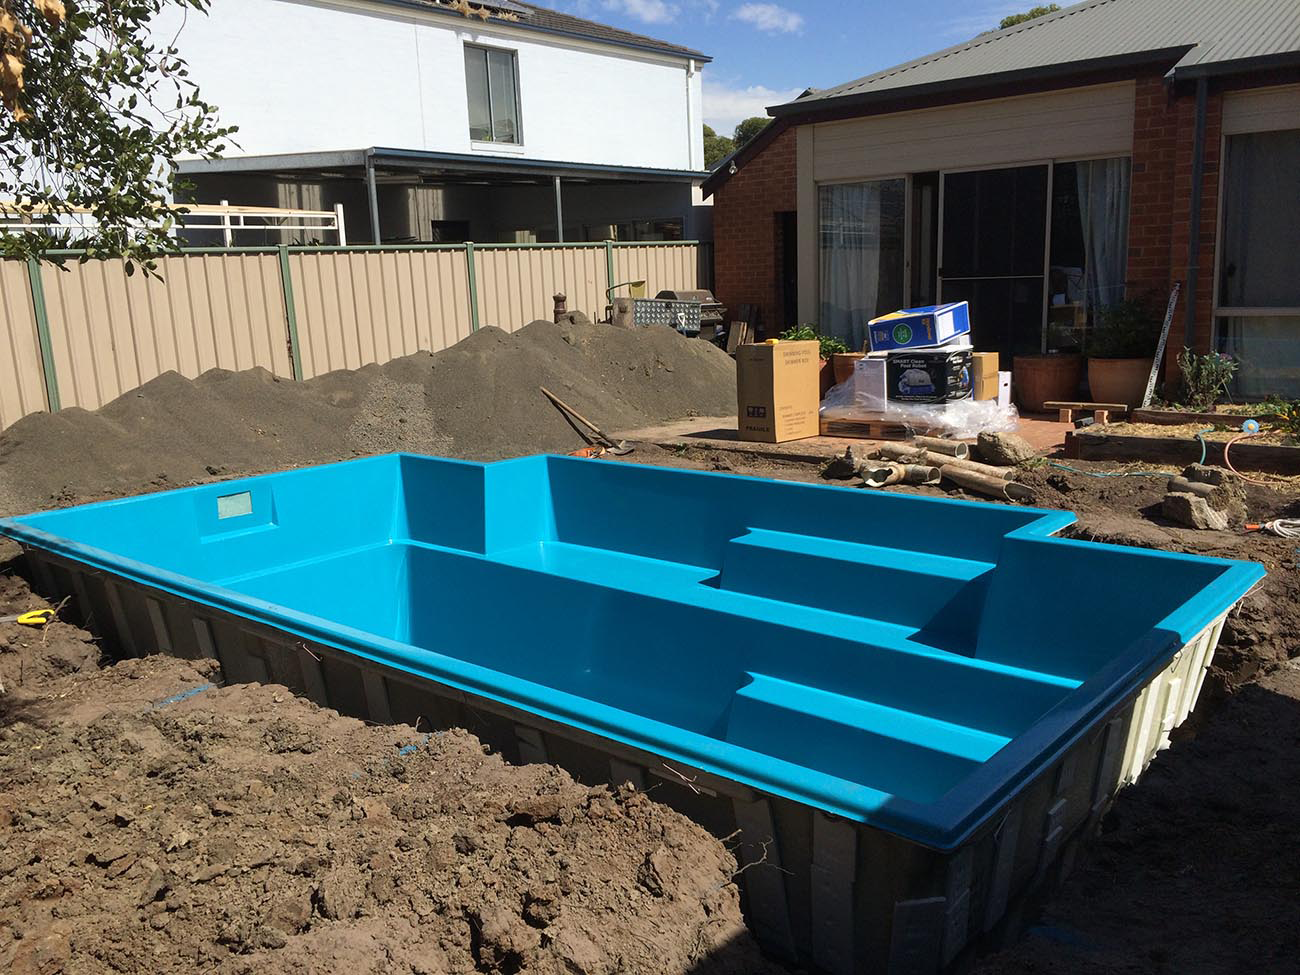 Small living in style landscaping and a lap pool lisa for Pool installation